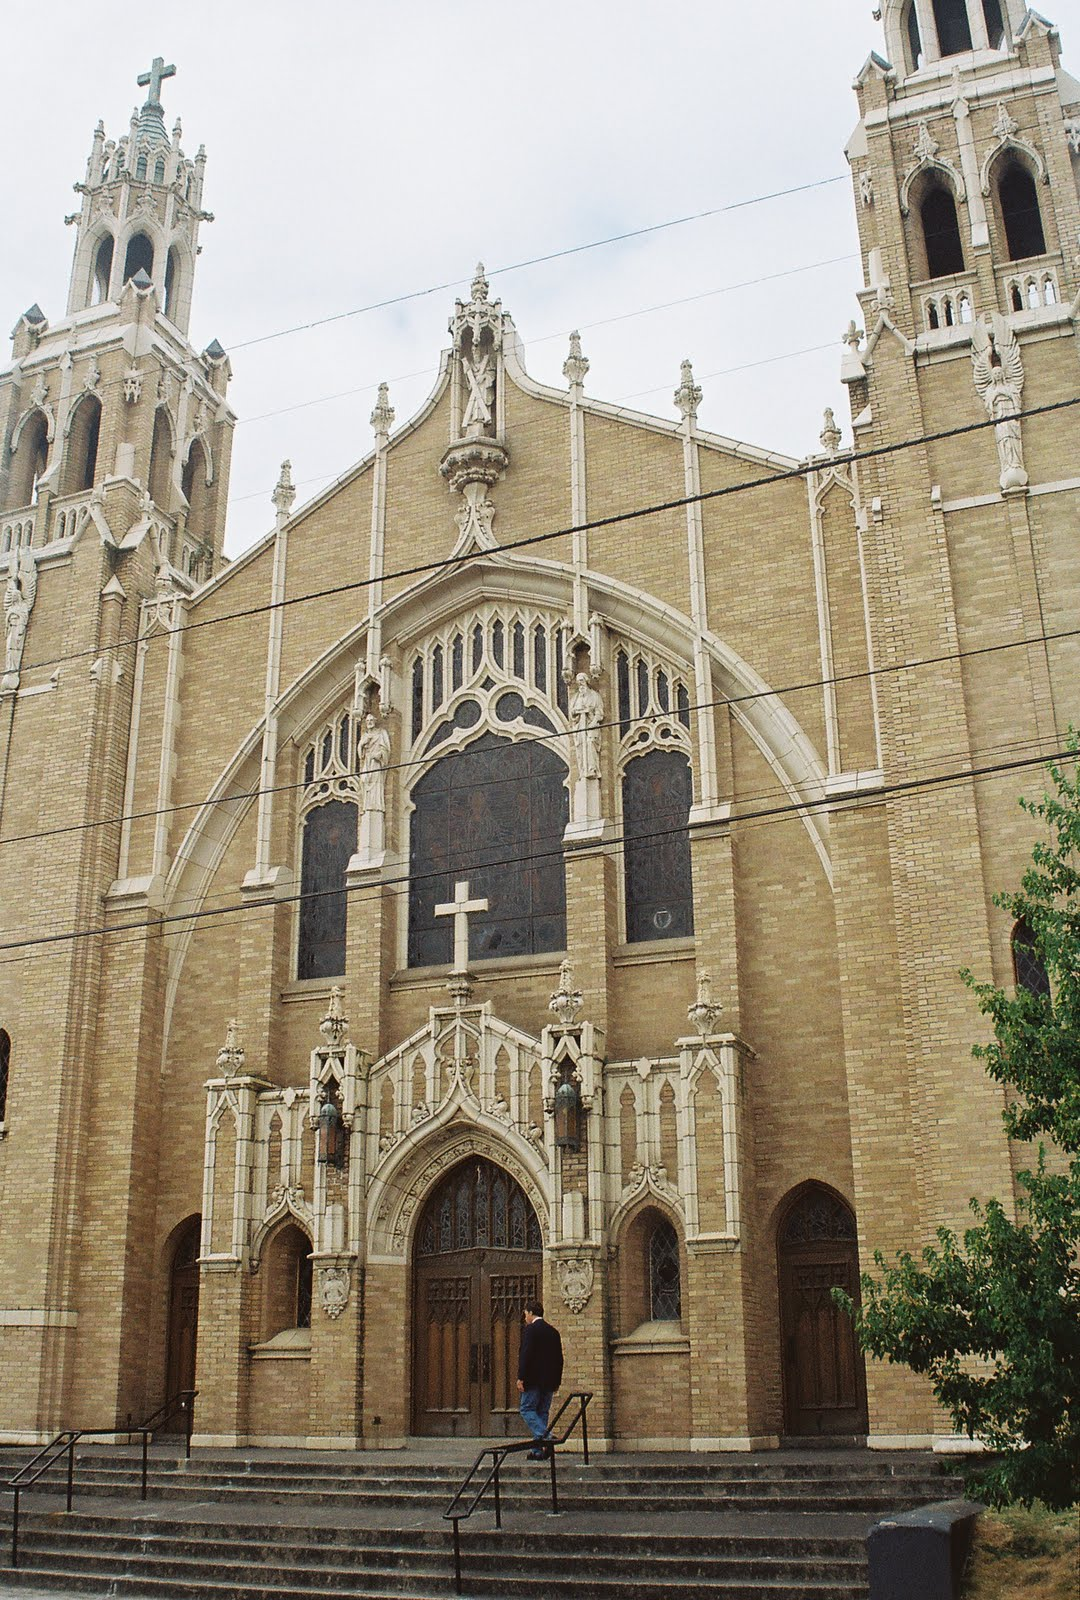 new portland catholic singles Maine portland catholic singles we offer a truly catholic environment, thousands of members, and highly compatible matches based on your personality, shared faith, and lifestyle.